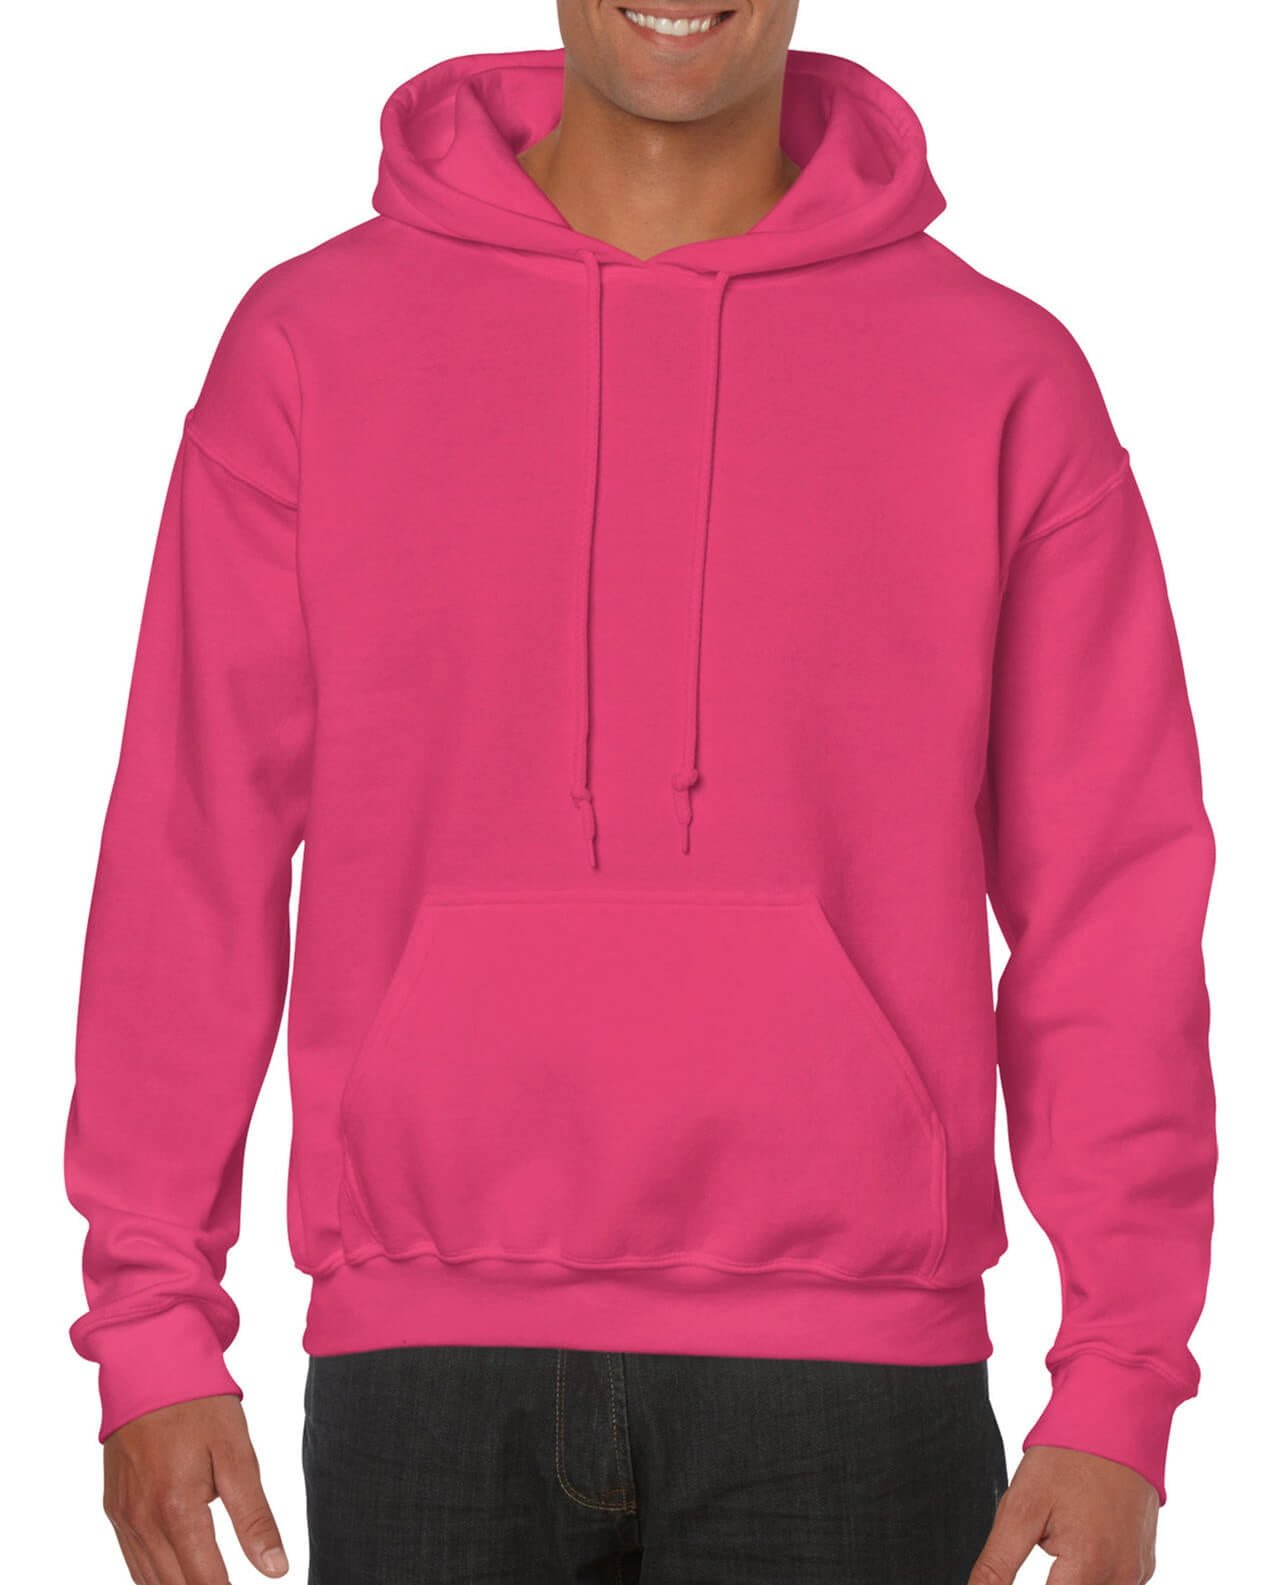 ADULT 50/50 HOODED SWEAT-Heliconia